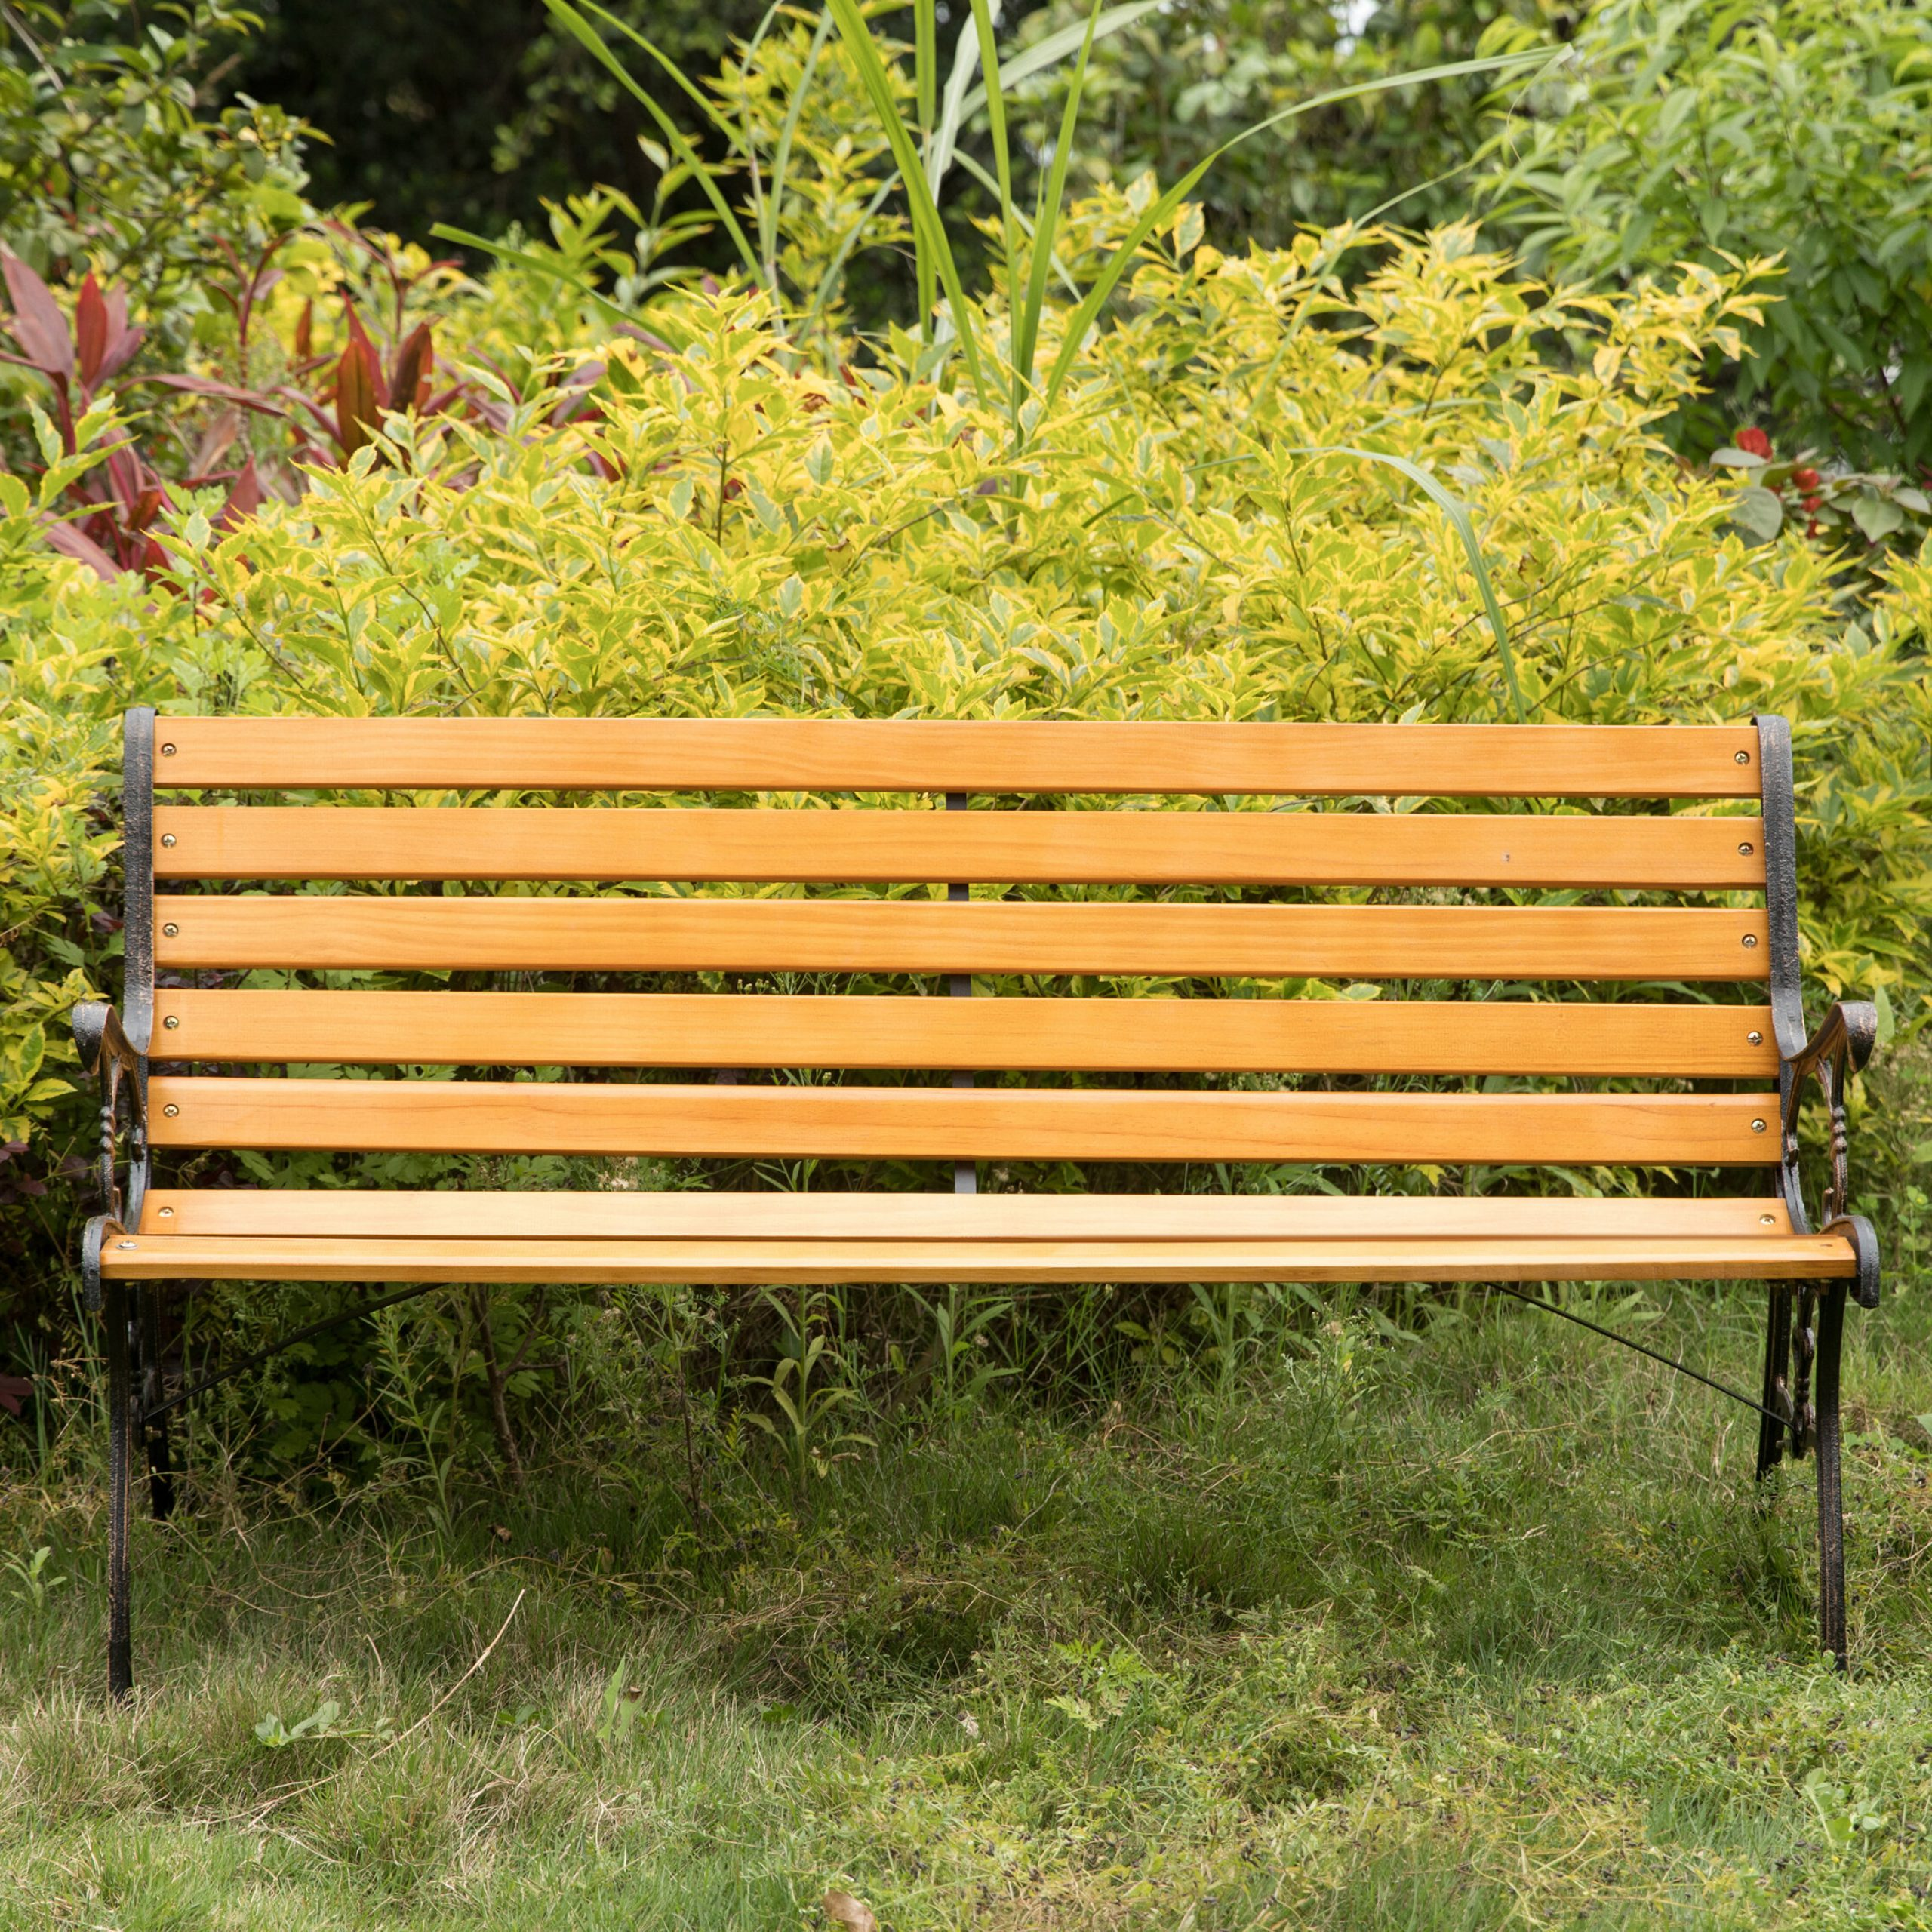 Amett Durable Steel And Solid Wood Park Bench Regarding Ishan Steel Park Benches (View 11 of 25)